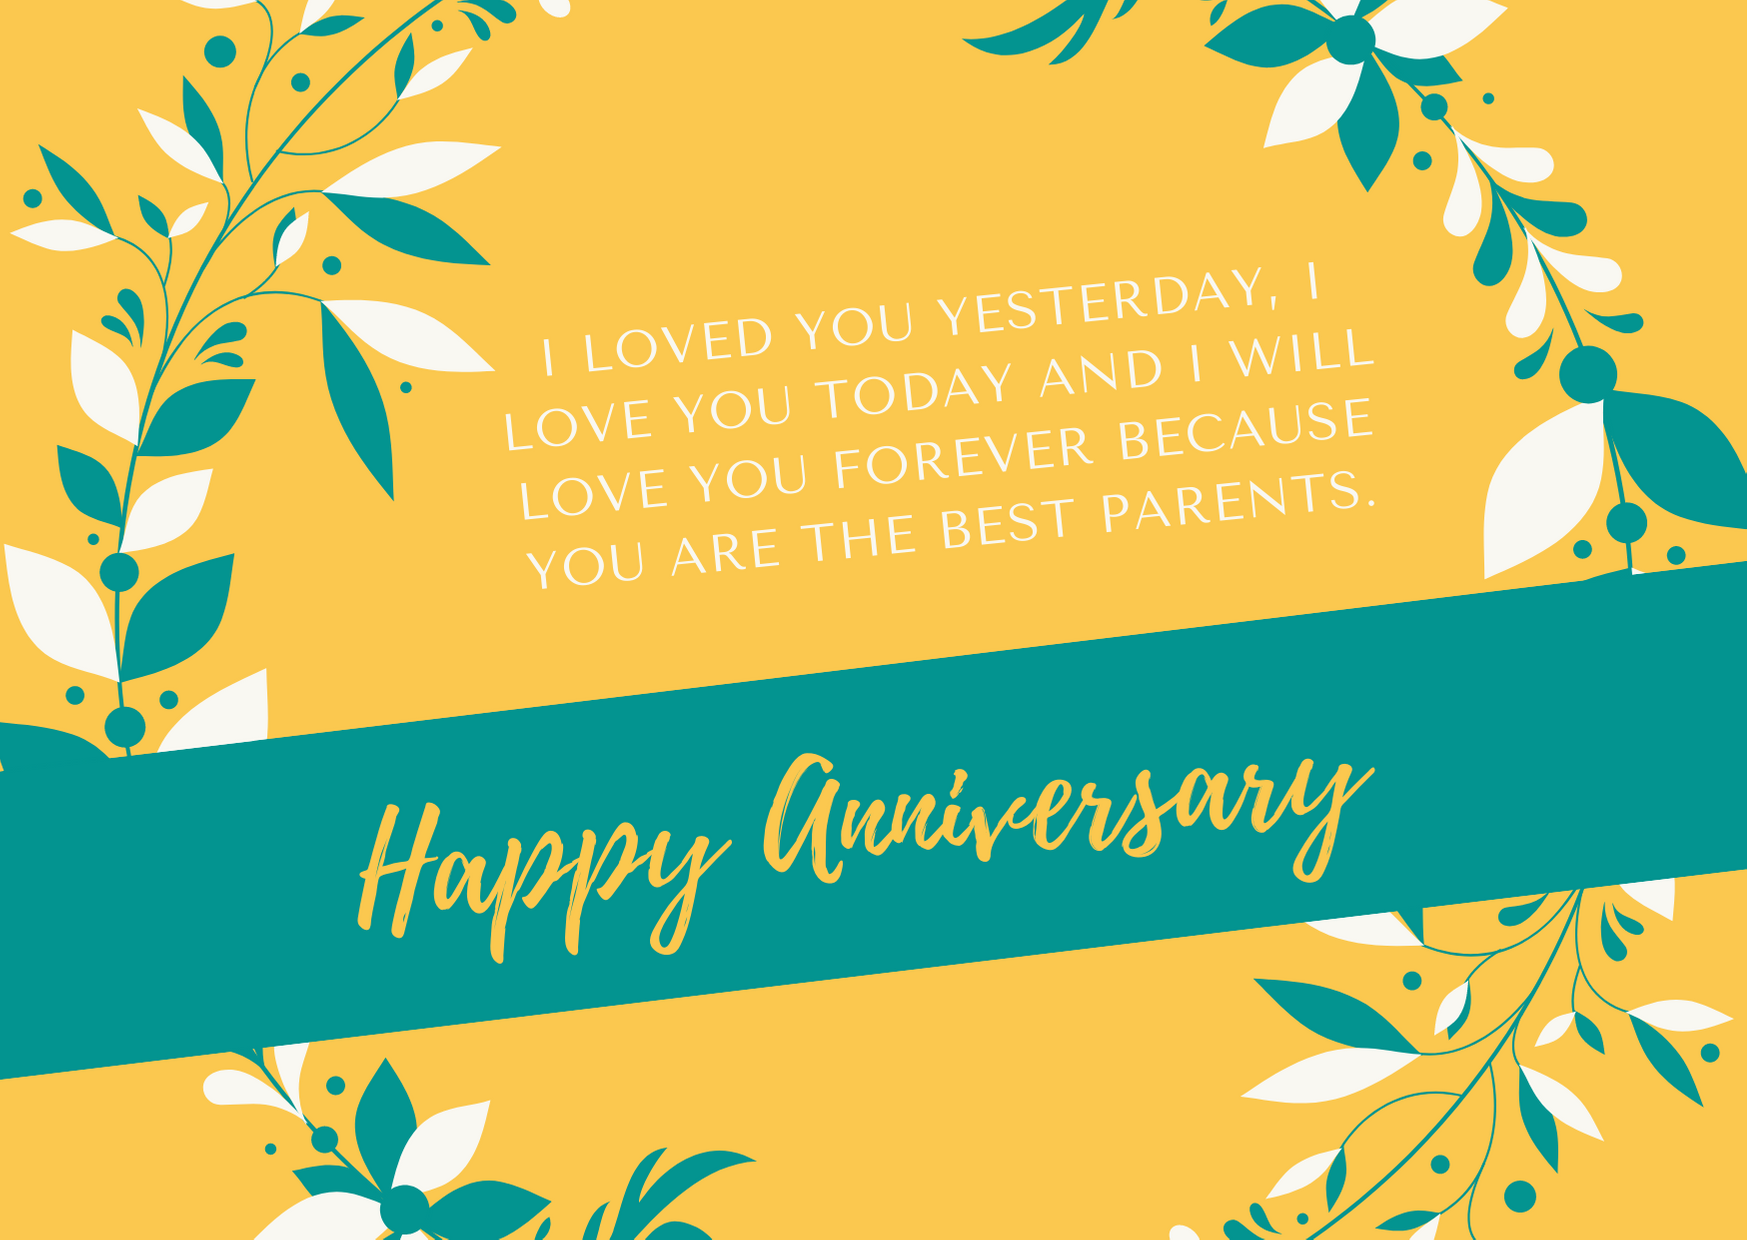 anniversary wishes for parents from children